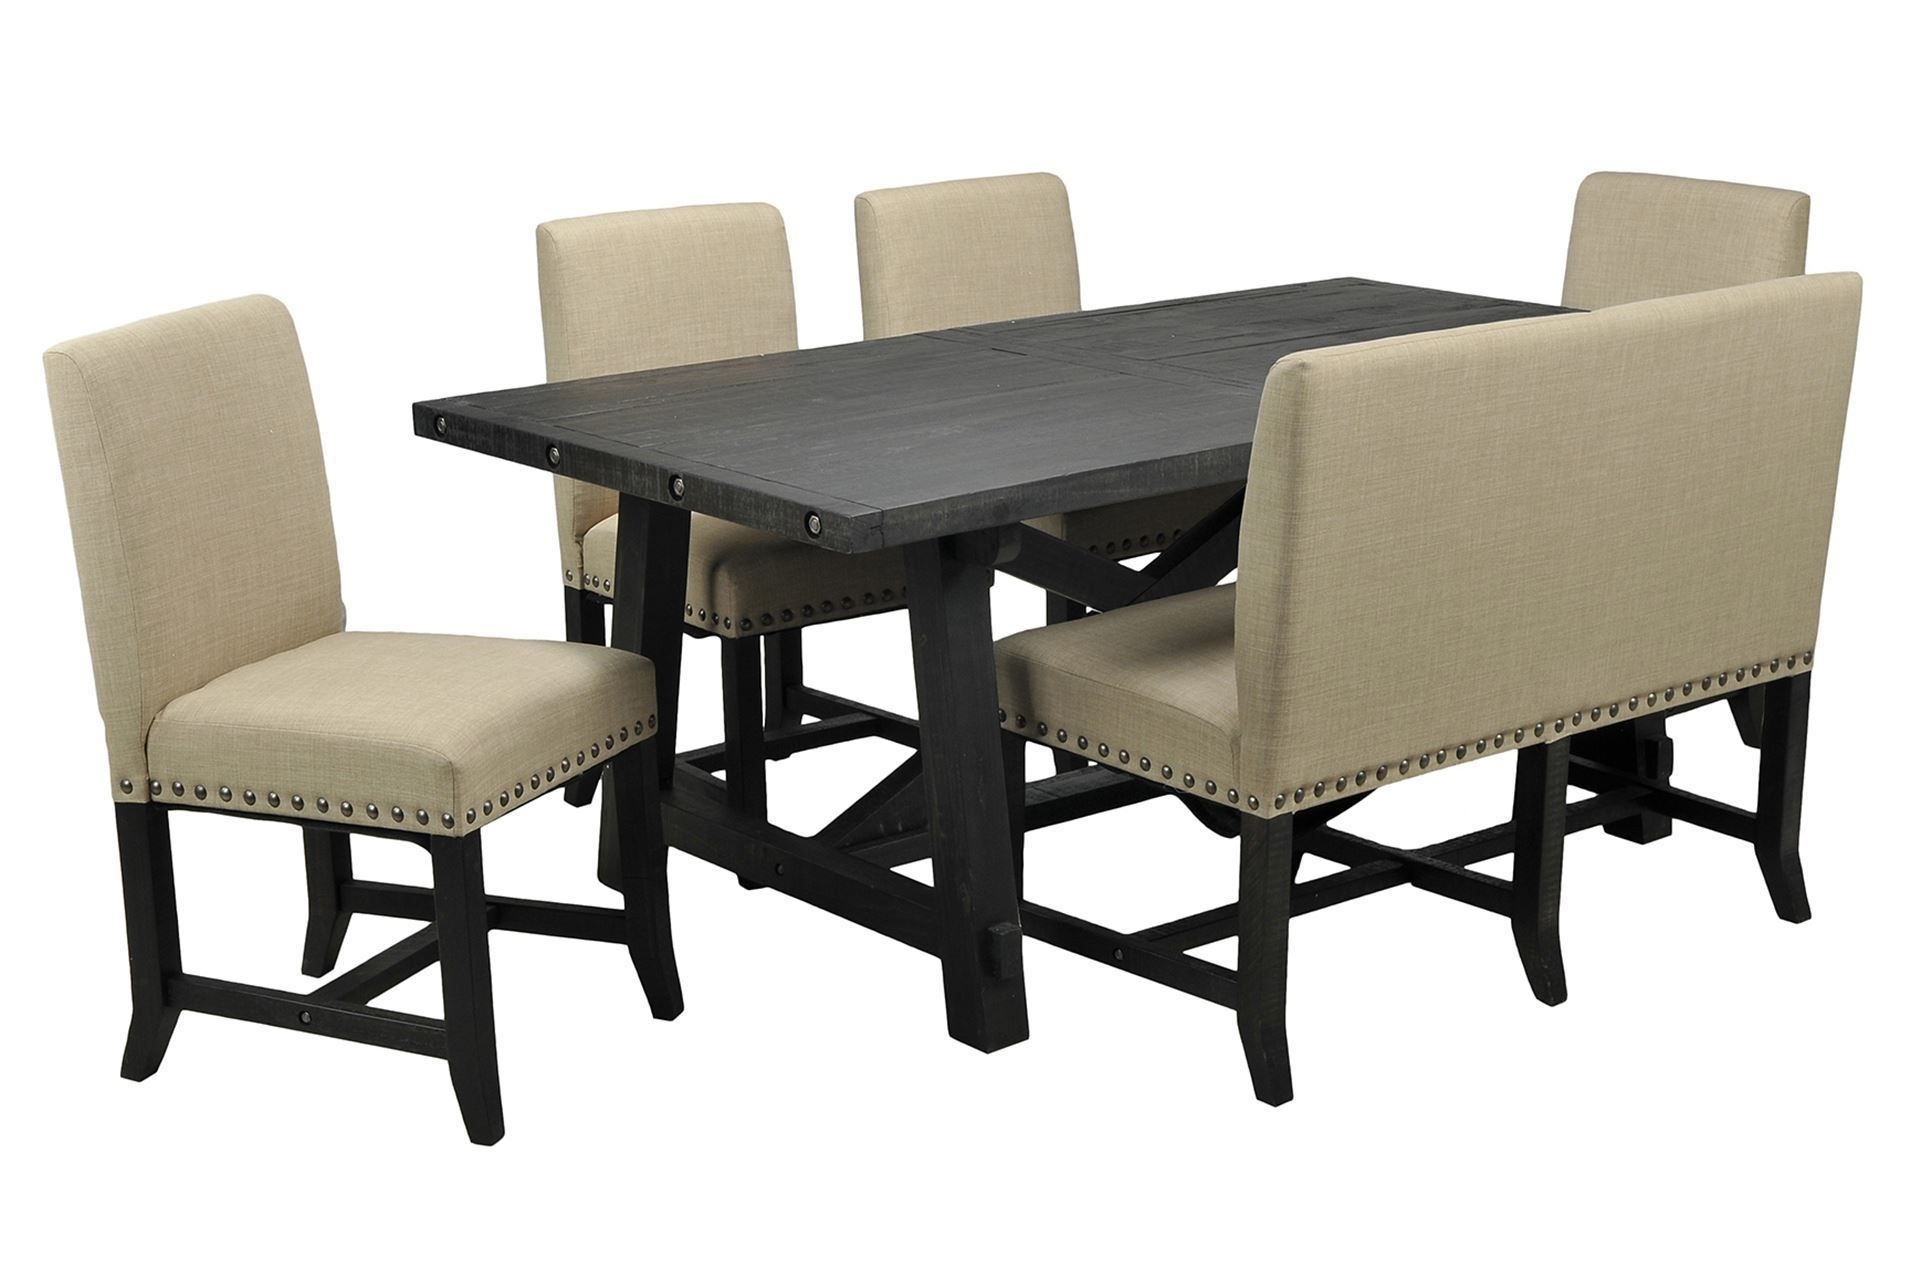 Jaxon 6 Piece Rectangle Dining Set W/bench & Uph Chairs | Home Decor With Regard To Most Recent Jaxon Grey 6 Piece Rectangle Extension Dining Sets With Bench & Wood Chairs (Image 8 of 20)